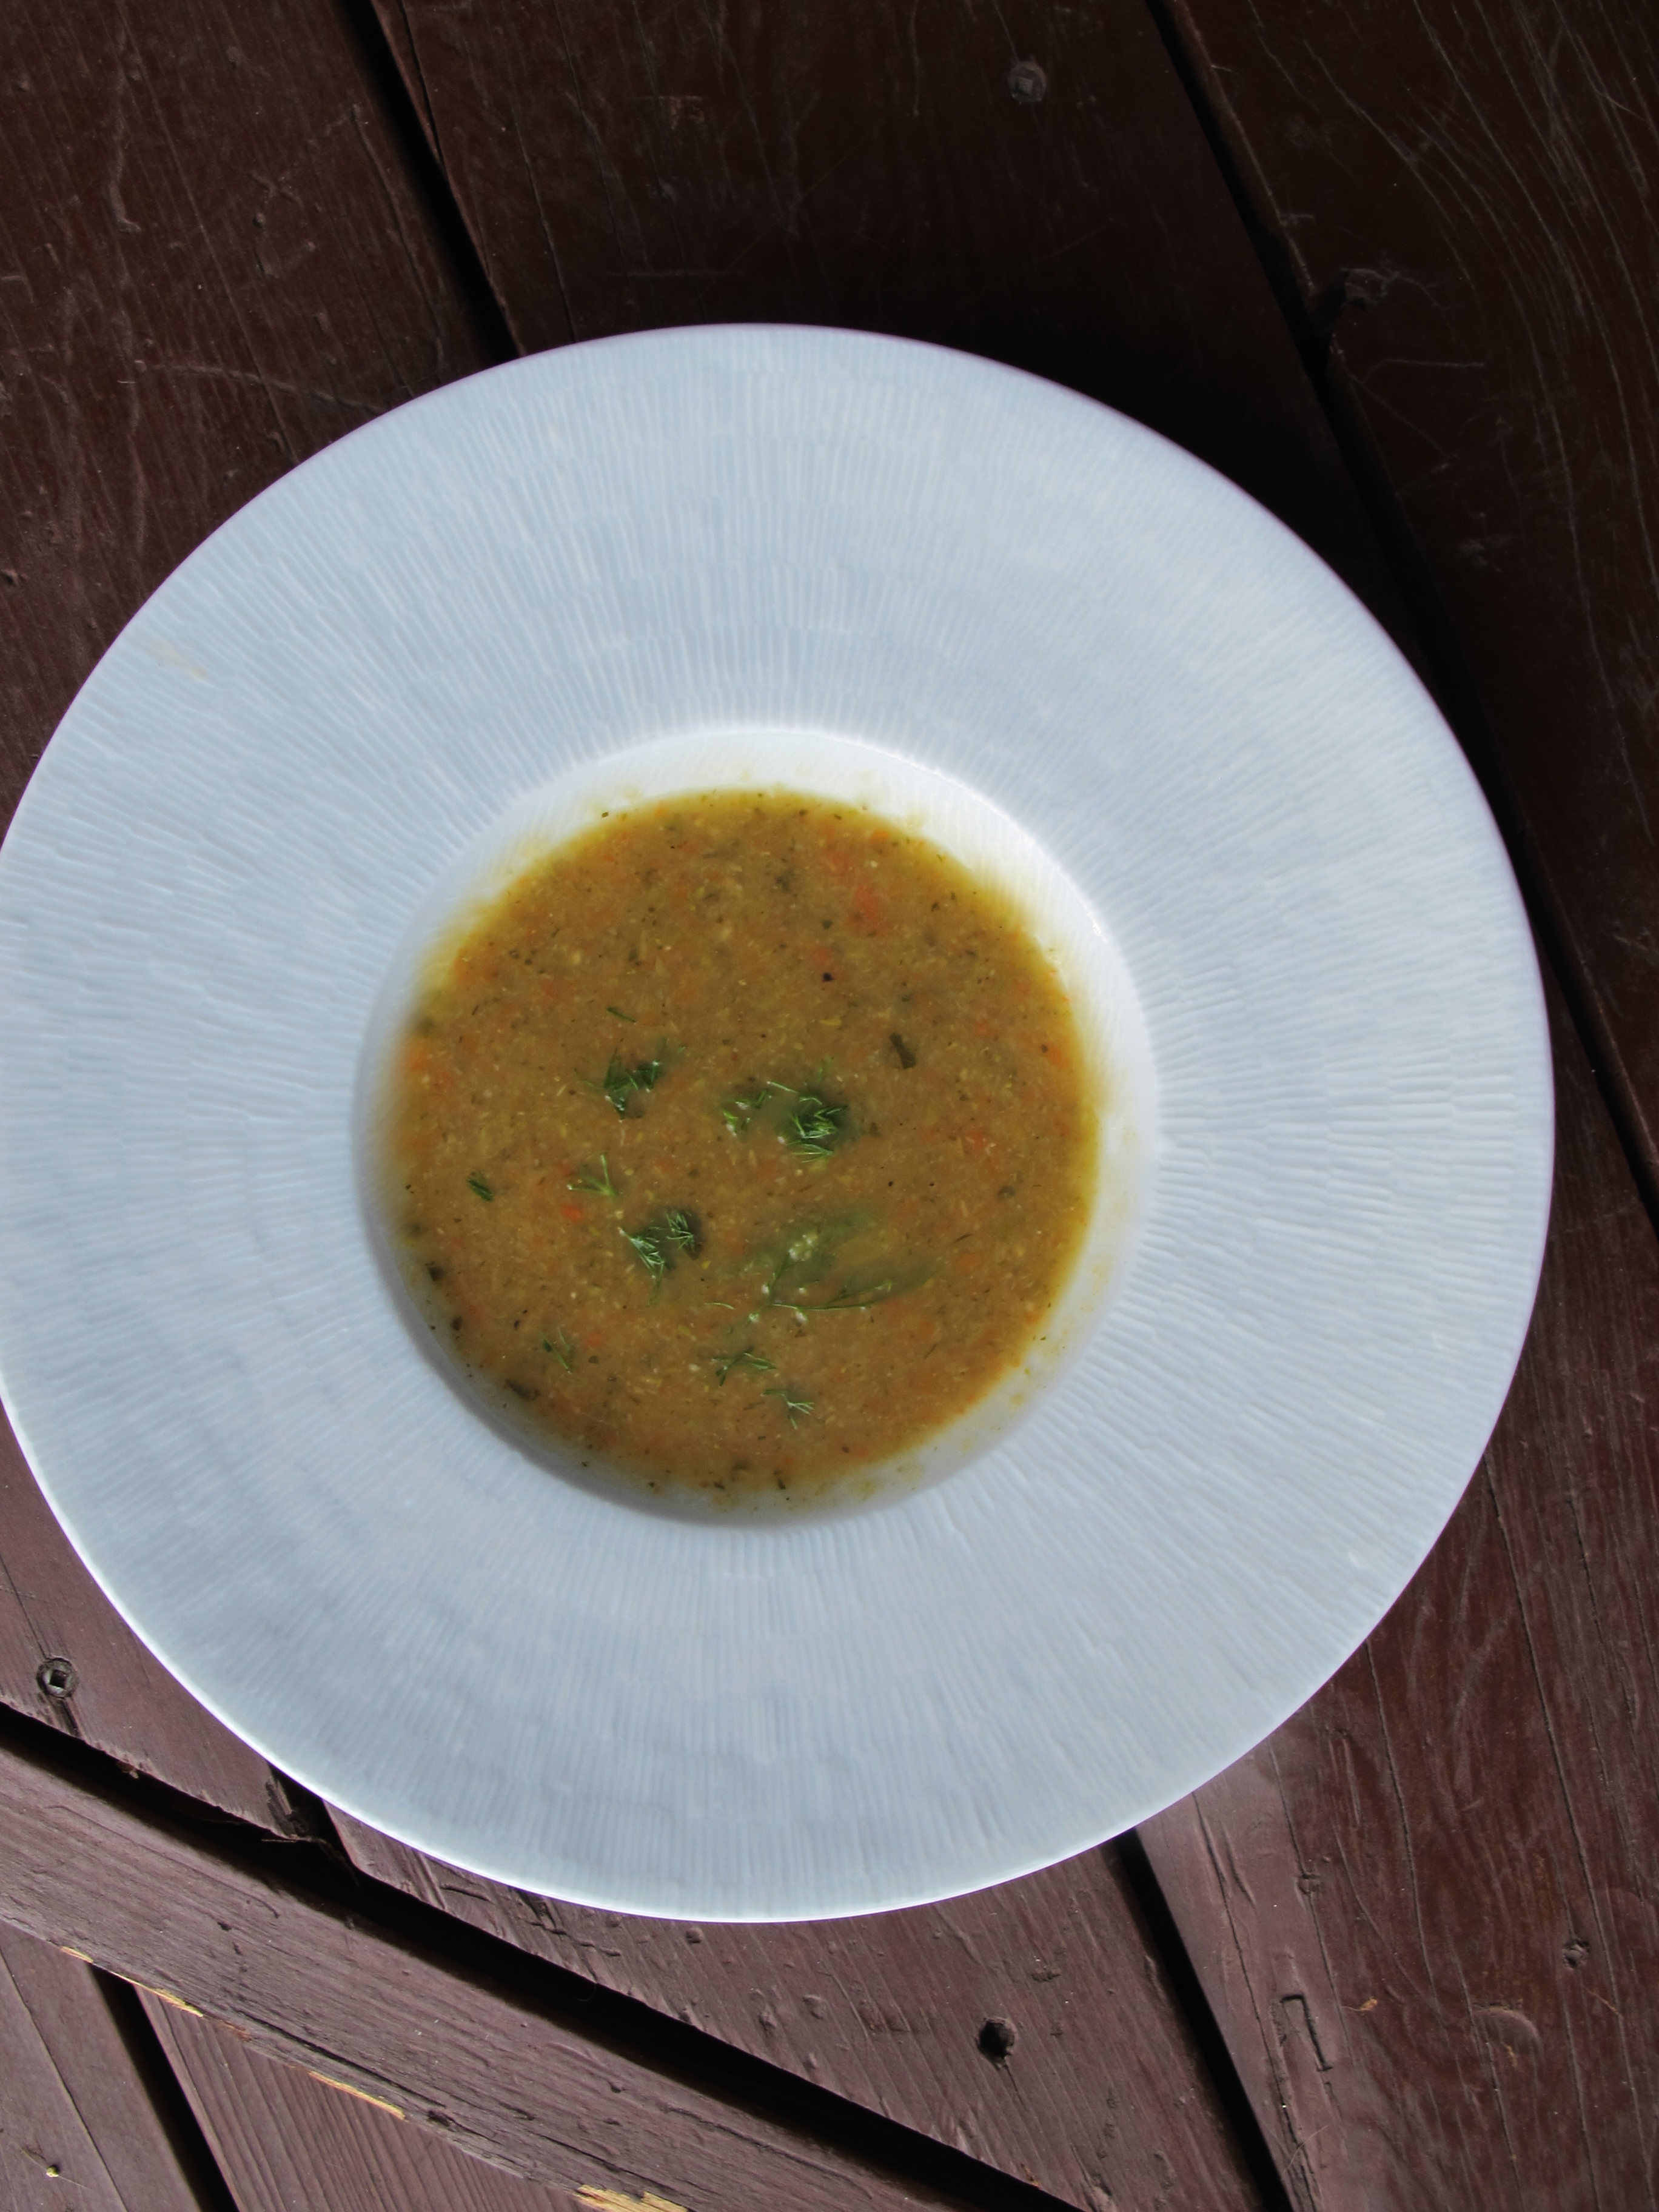 Wondrous It Might As Well Be Spring Soup Lusty Vegan Fare More Download Free Architecture Designs Jebrpmadebymaigaardcom